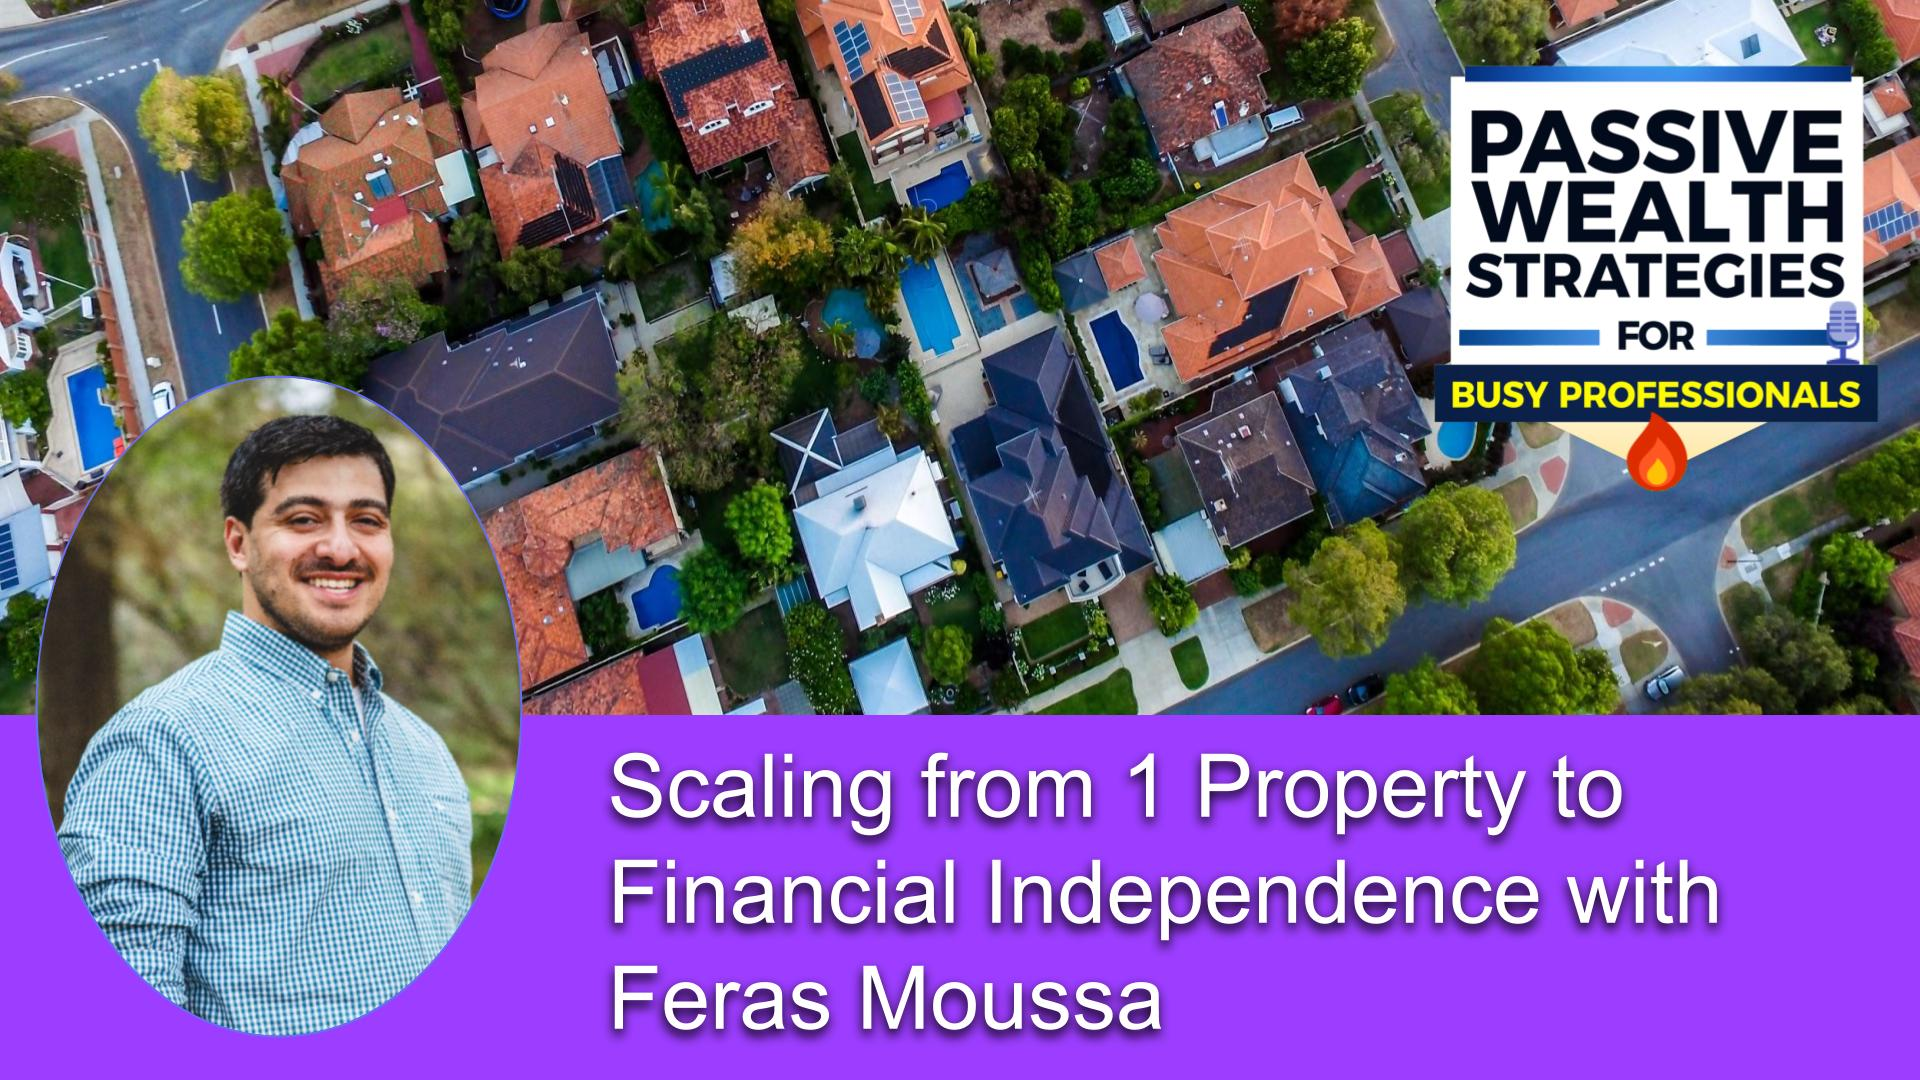 Scaling from 1 Property to Financial Independence with Feras Moussa